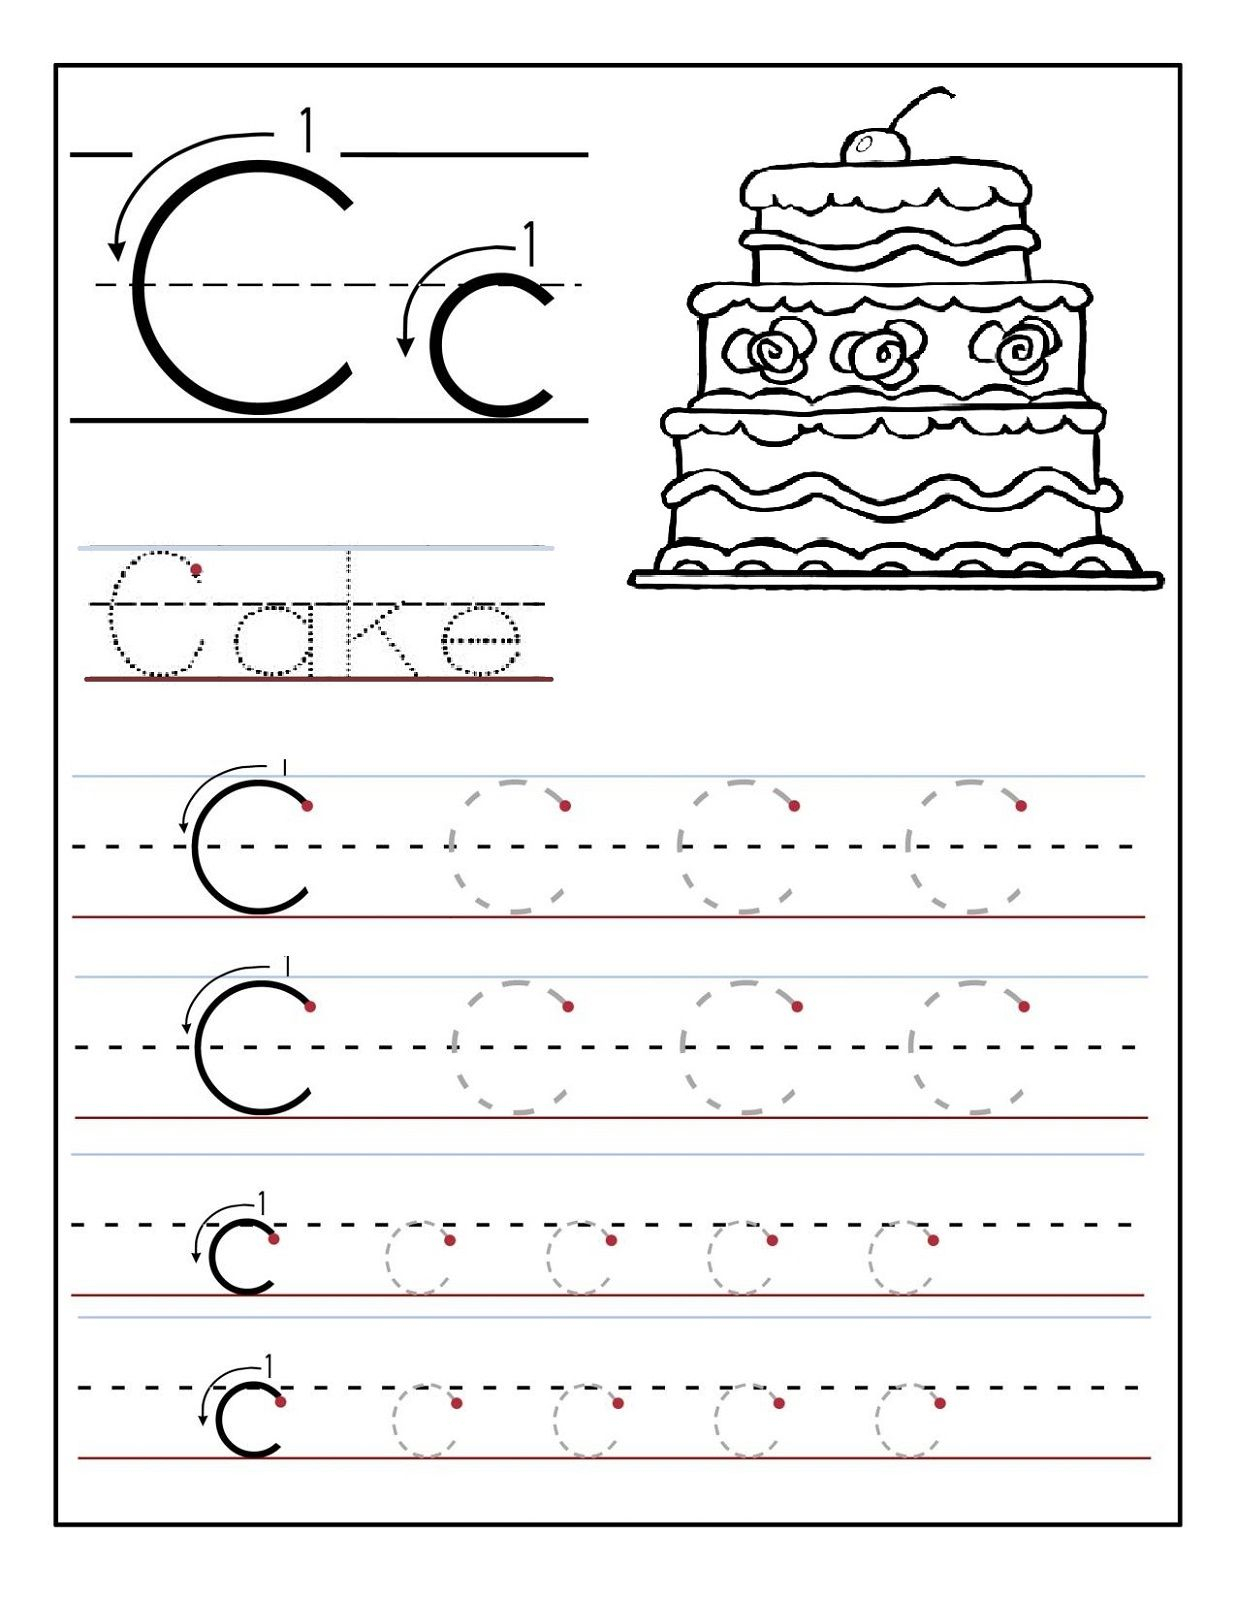 Trace The Letter C Worksheets | Tracing Worksheets Preschool